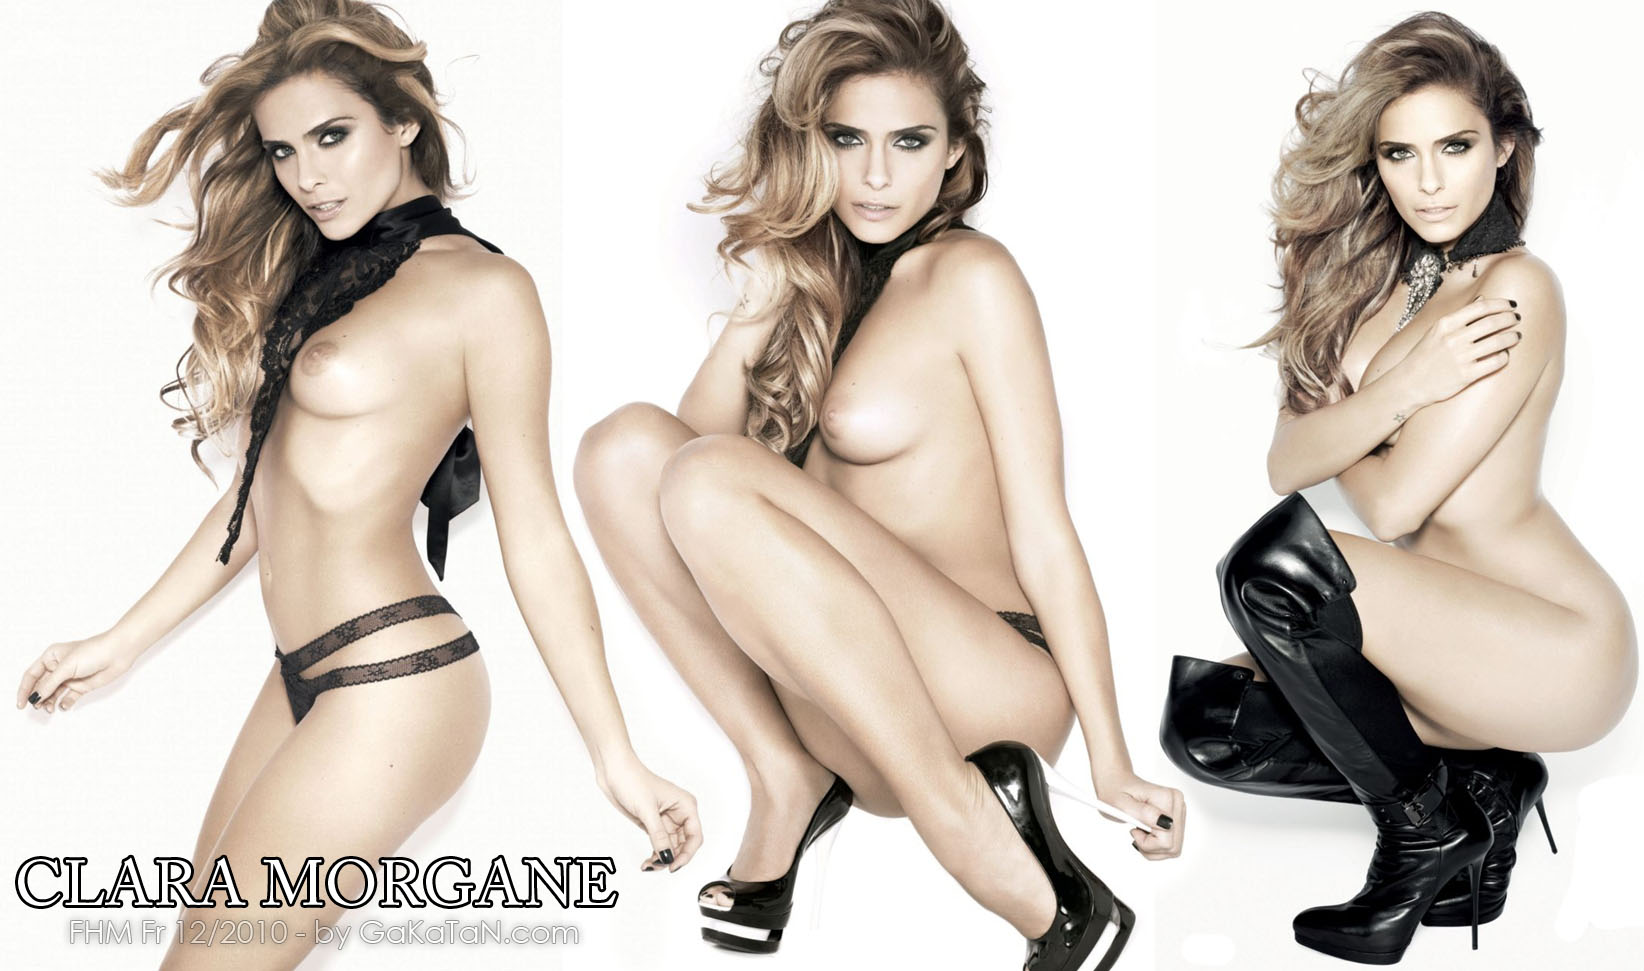 clara morgane nu hot